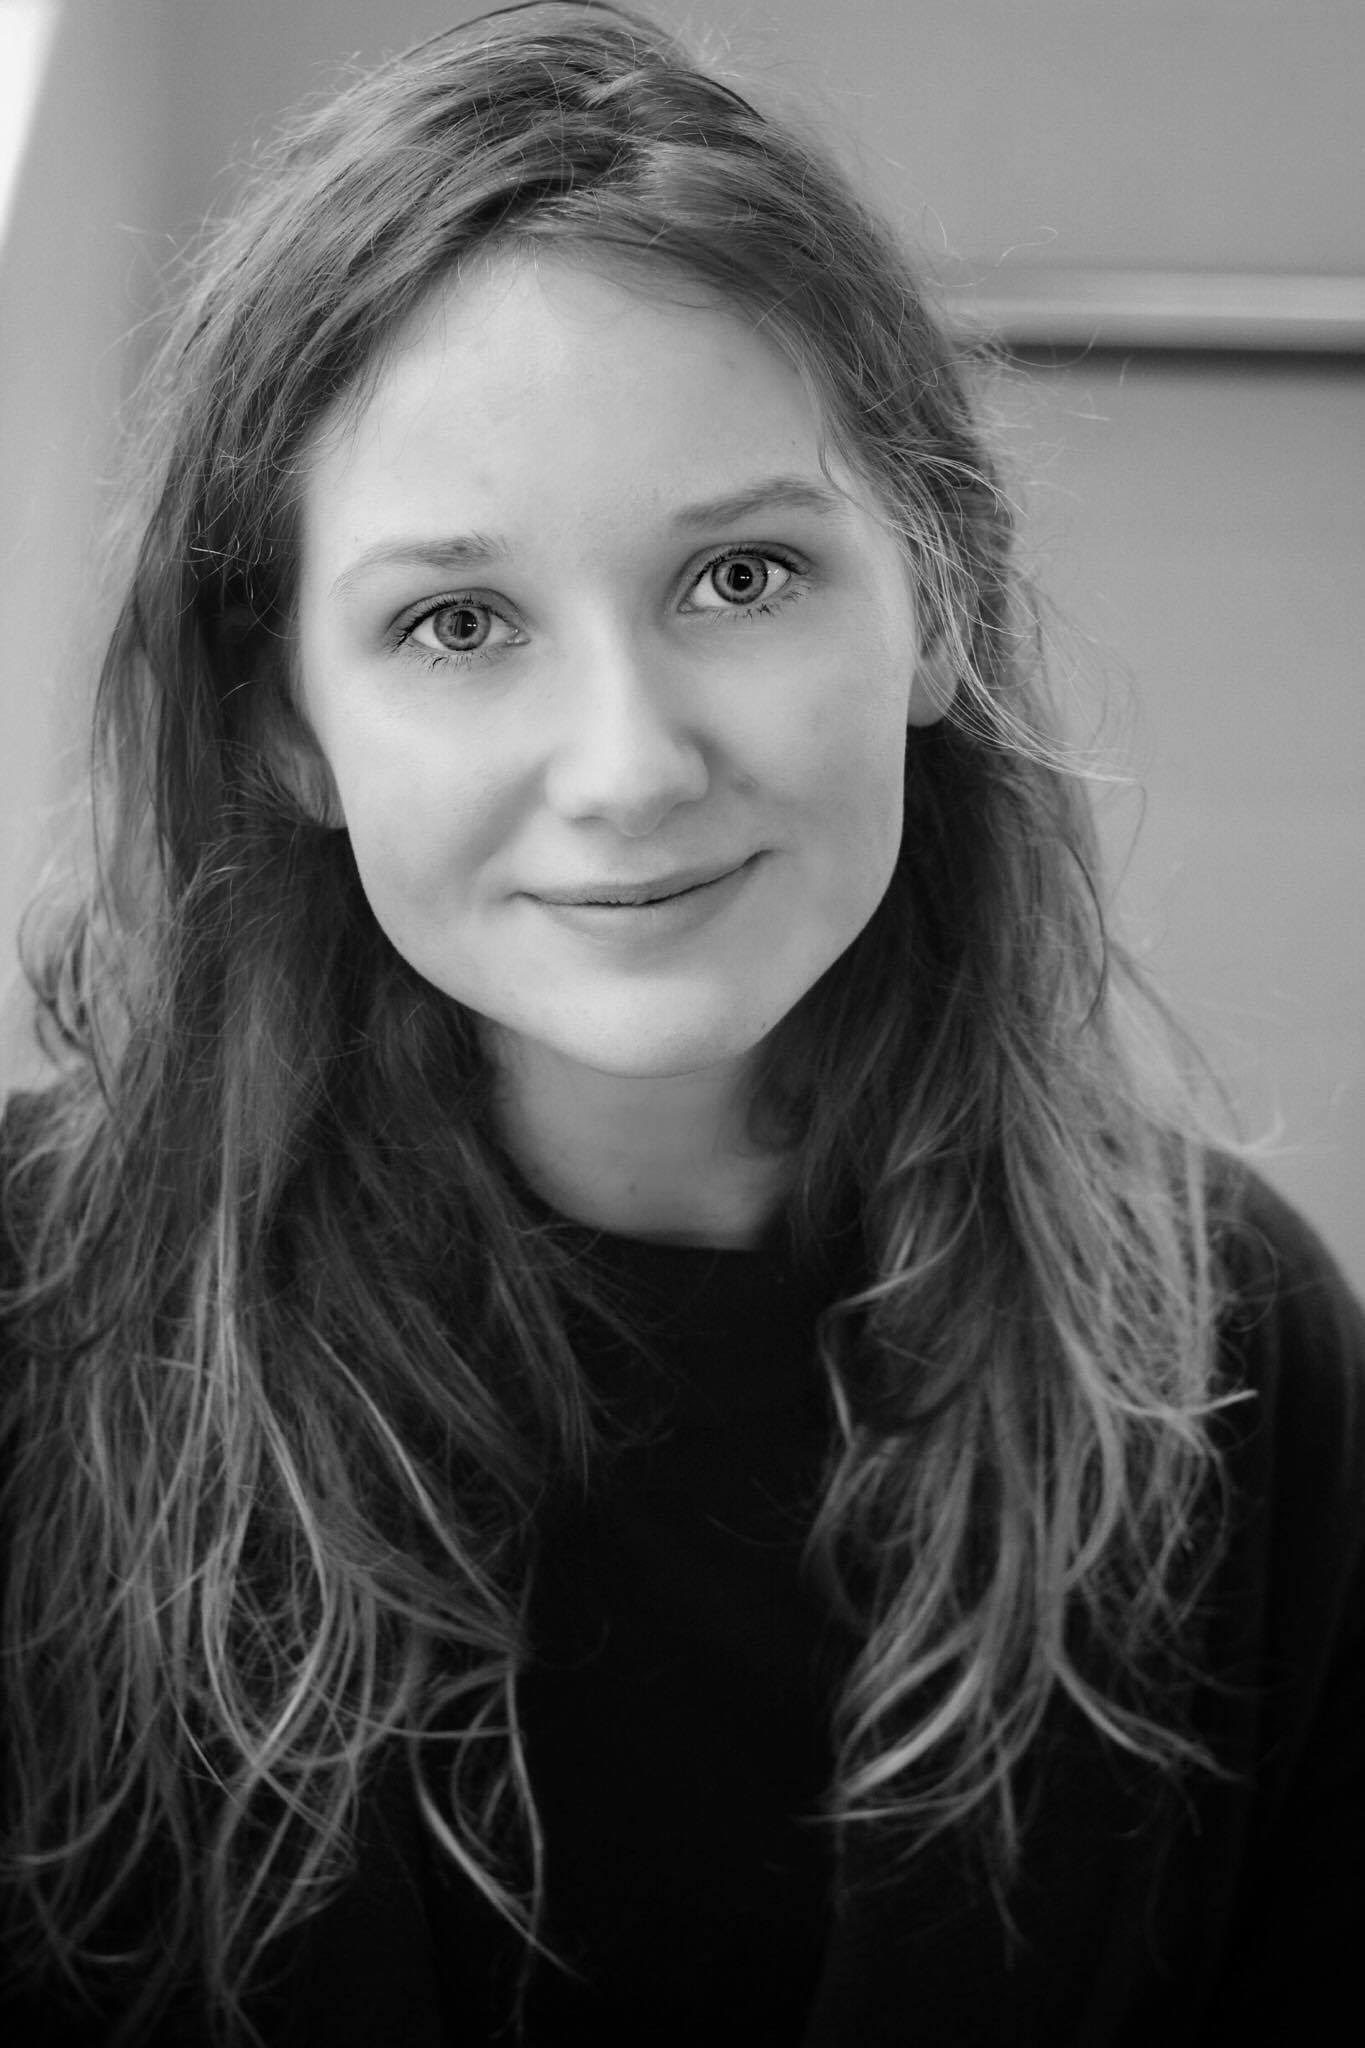 http://motiondanceinitiative.co.uk/wp-content/uploads/2018/05/Eleanor-profile.png